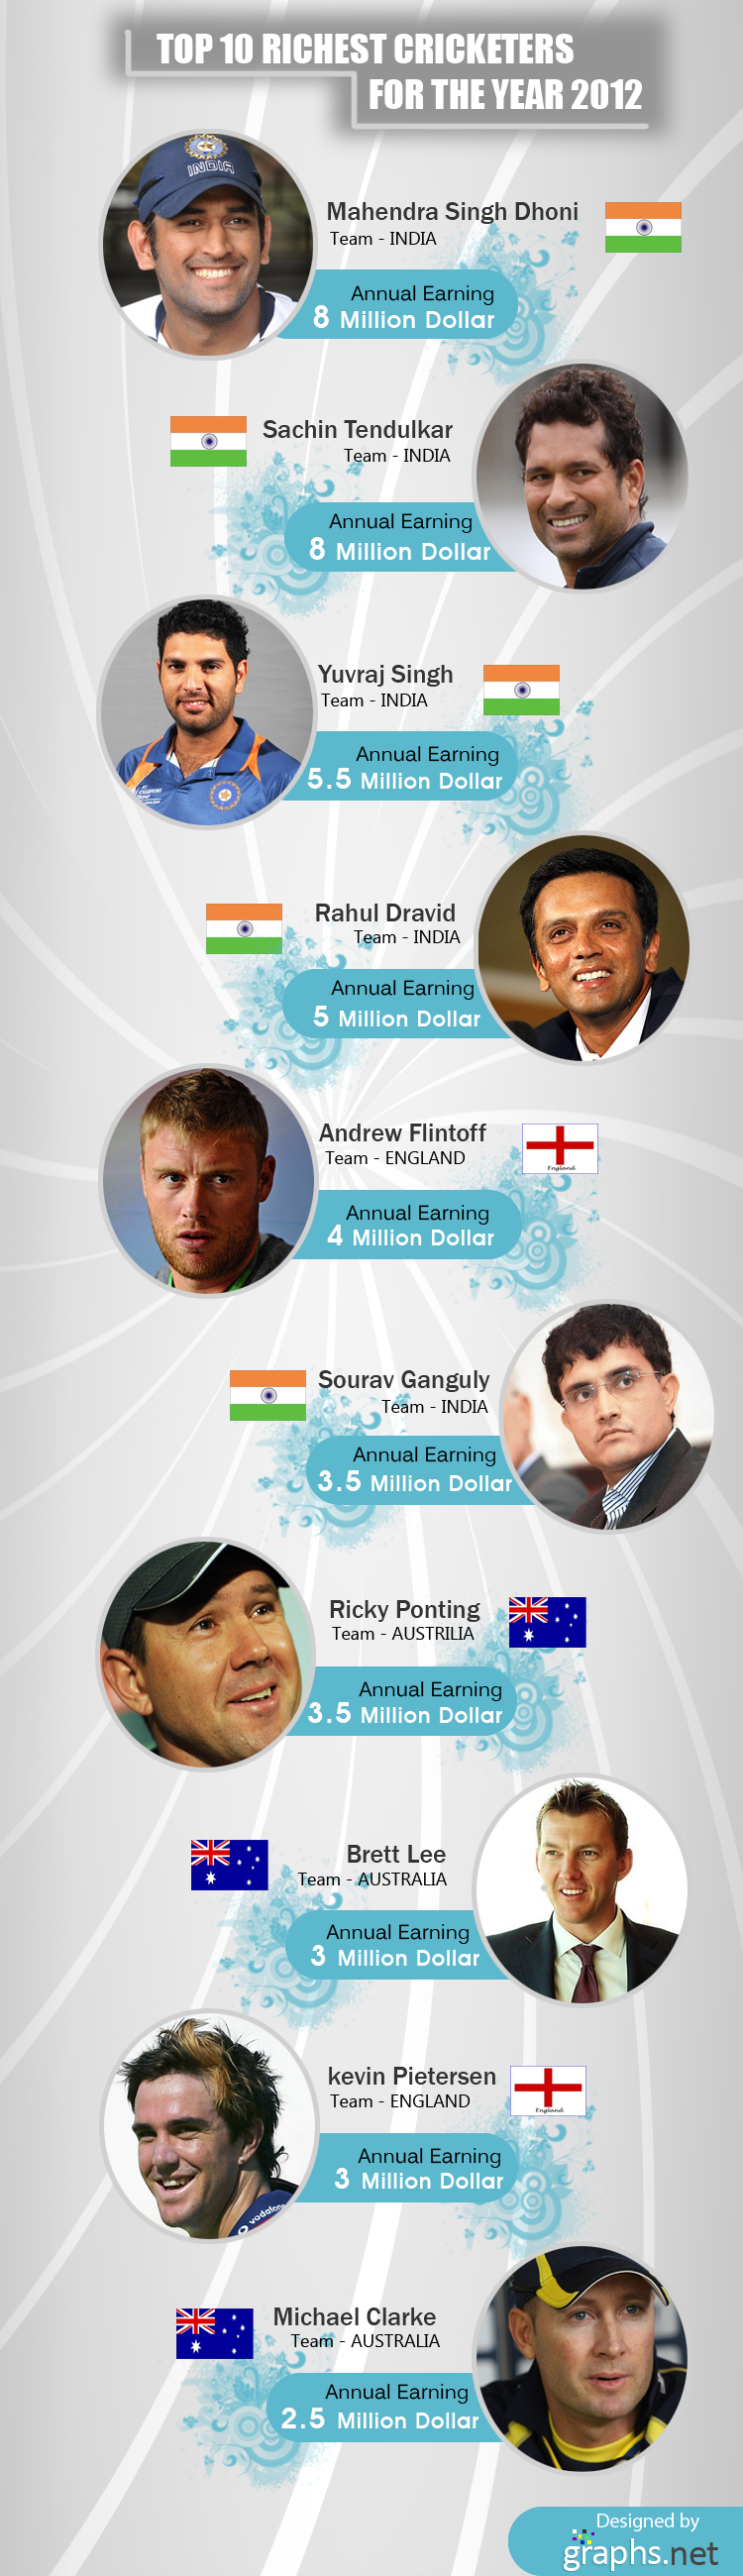 Top 10 Richest Cricketers for the Year 2012